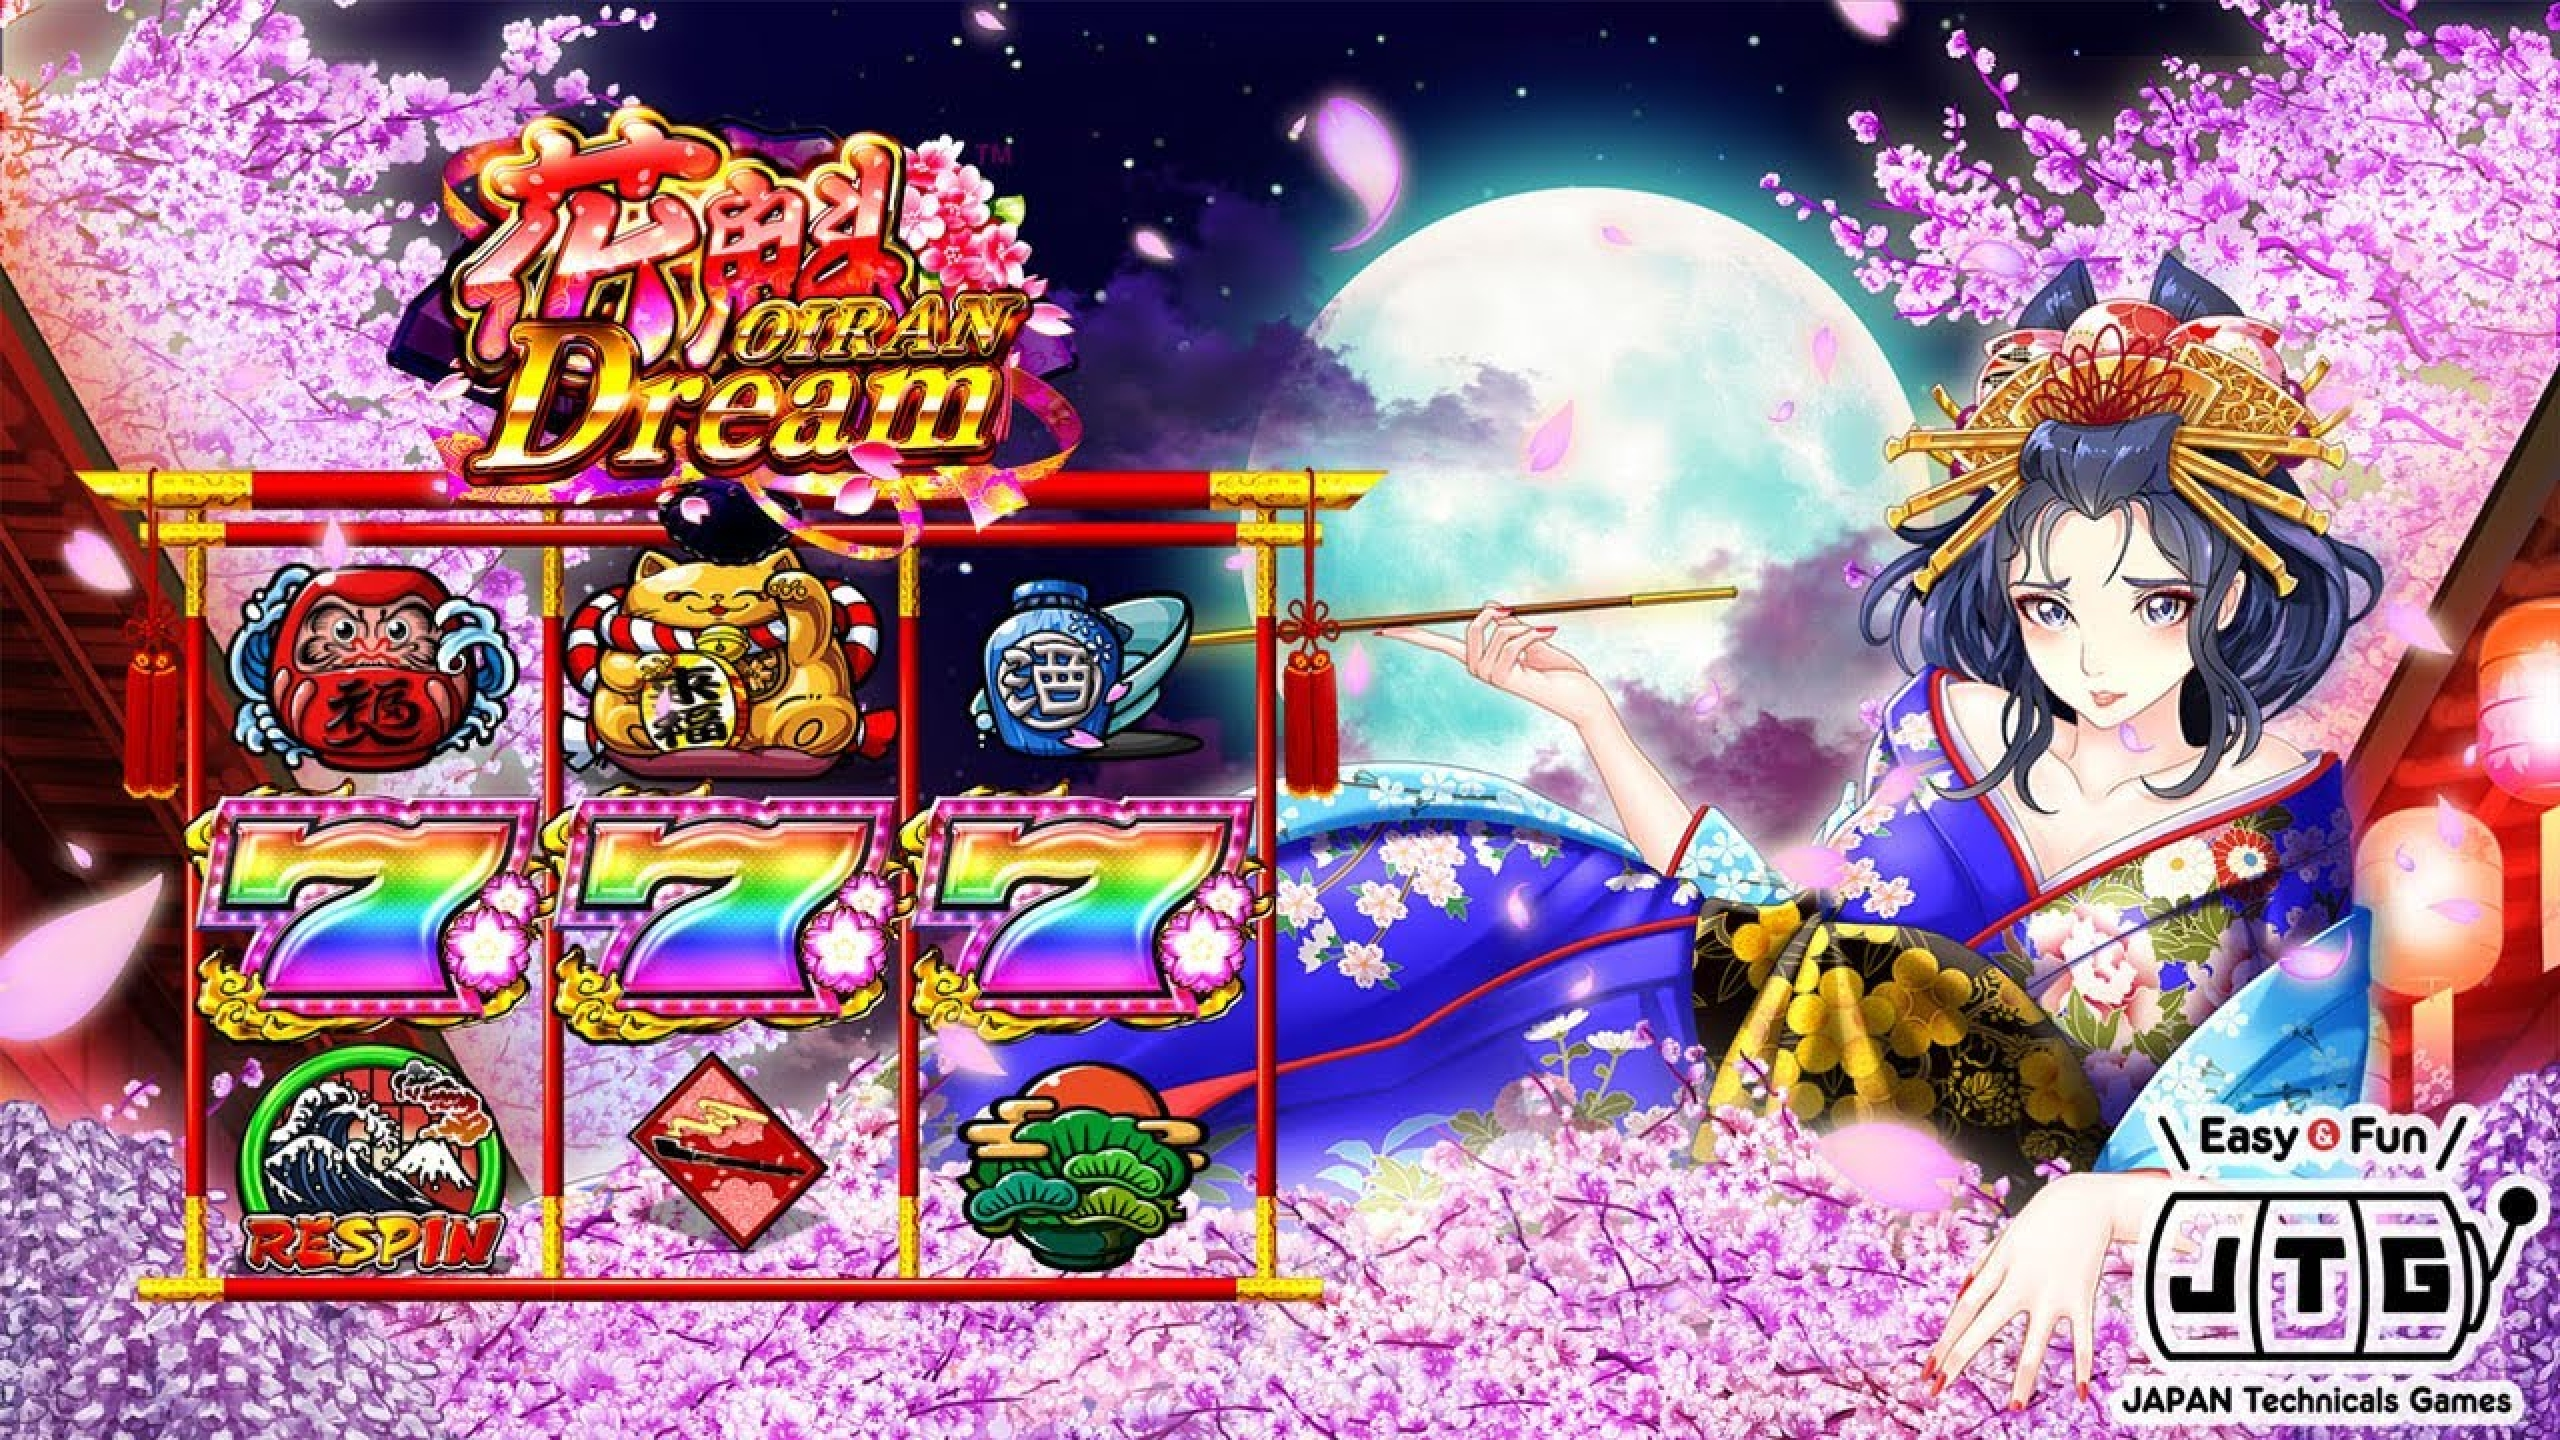 Se Oiran Dream Online Slot Demo Game, JTG